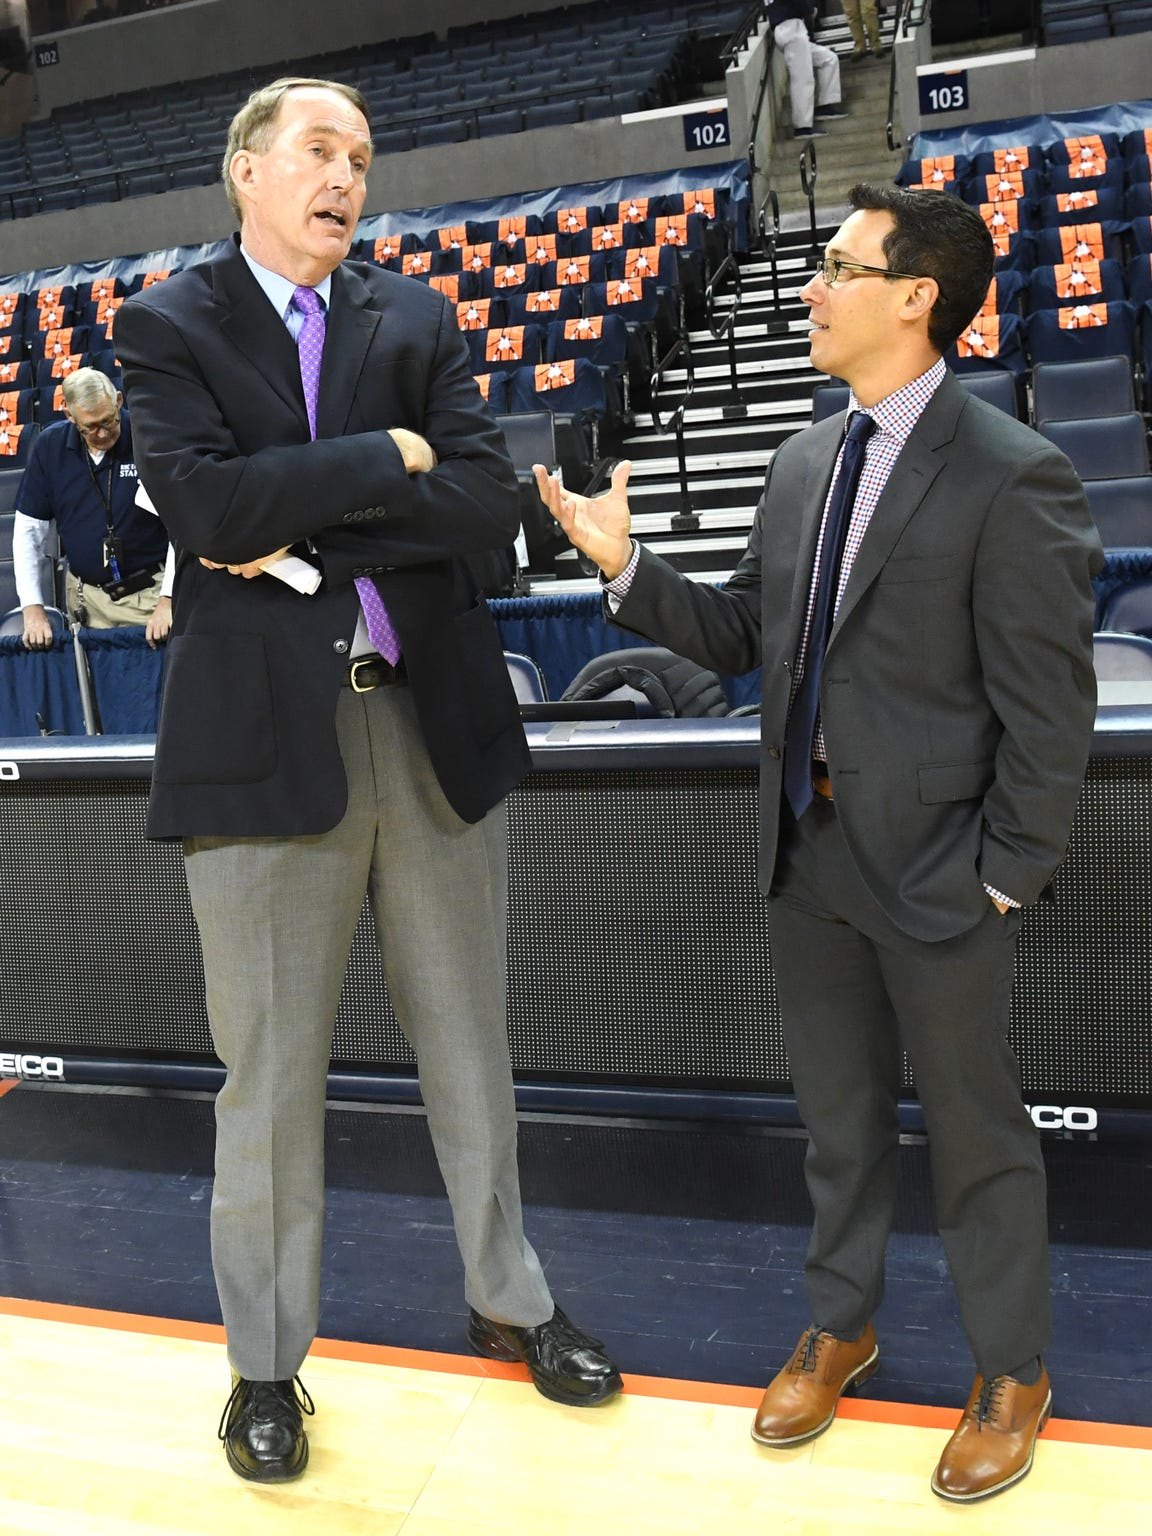 Dan Bonner and Justin Kutcher, the announcers for Raycom's television broadcast of Wake Forest-UVA on Tuesday, Jan. 22, share a pregame chat at John Paul Jones Arena in Charlottesville.